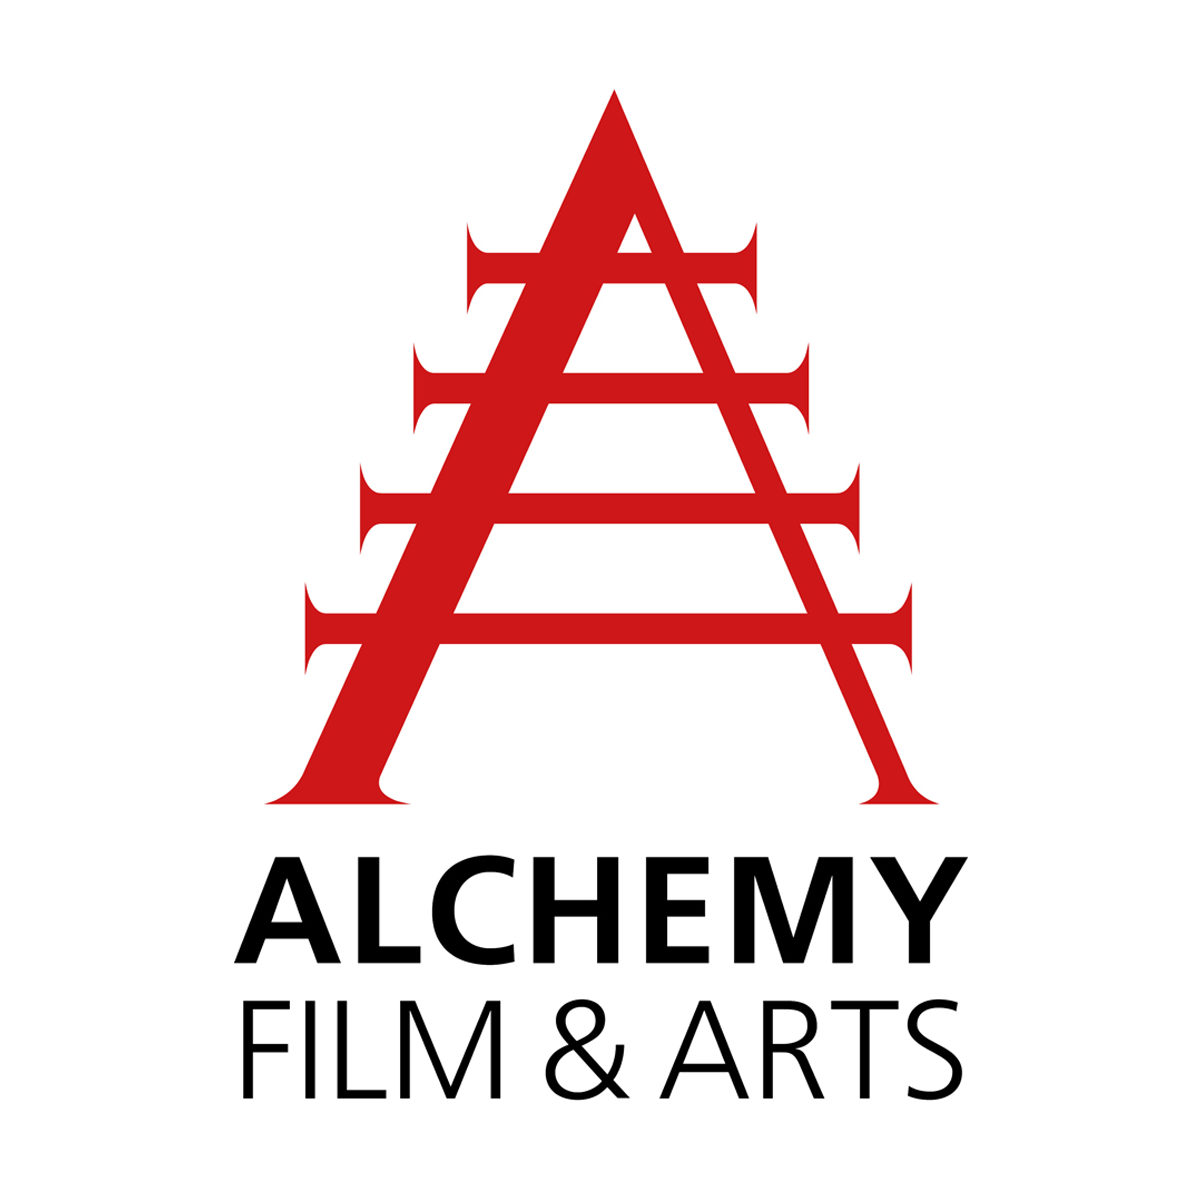 Alchemy Film & Arts